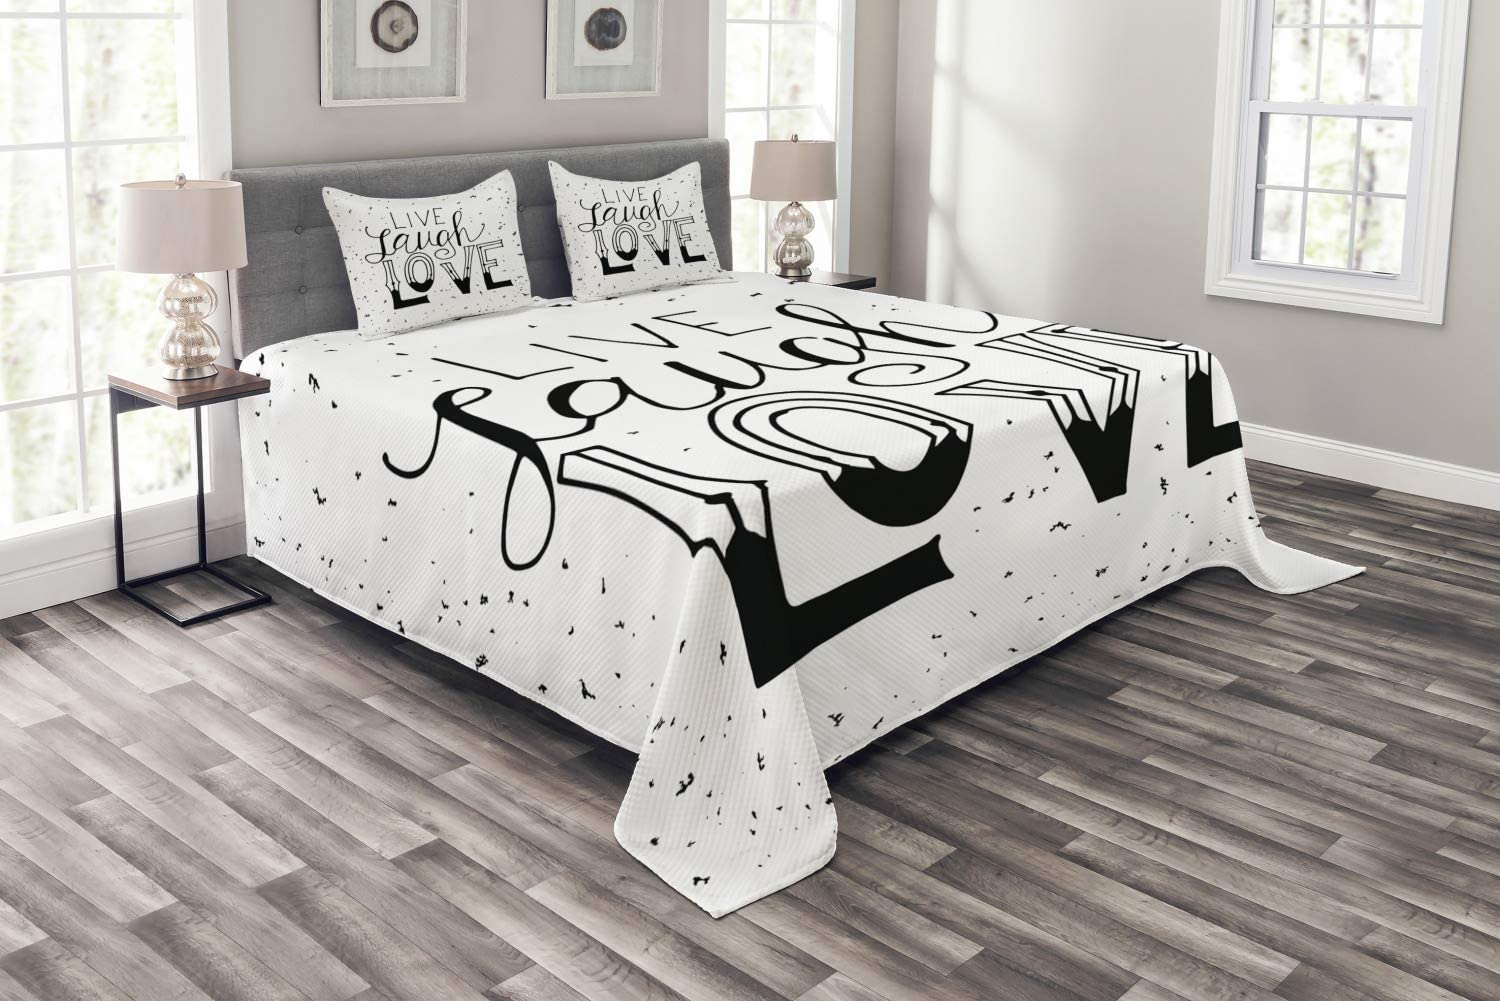 Ambesonne Live Laugh Love Bedspread Max 54% OFF Typo Hand Drawn Words Style New mail order